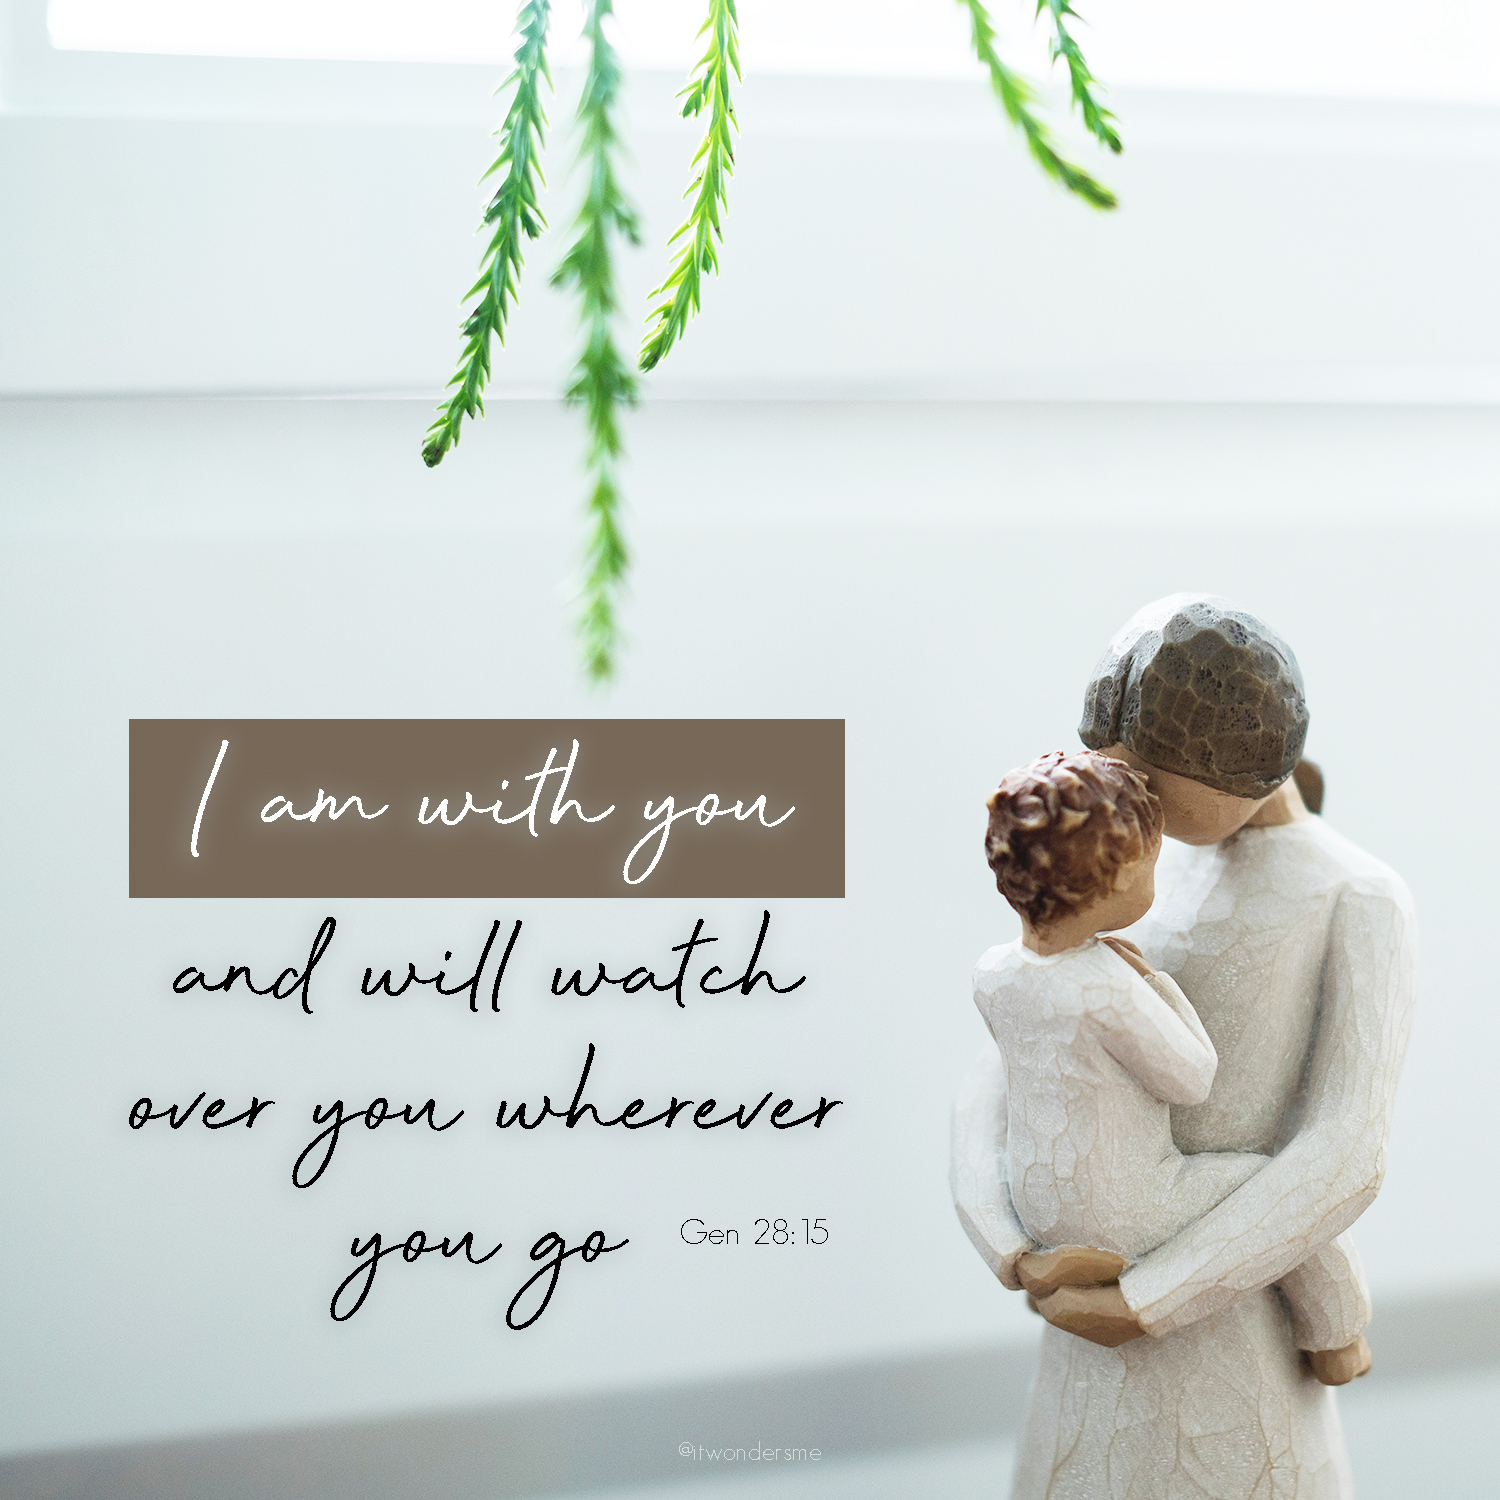 I am with you and will watch over you wherever you go.